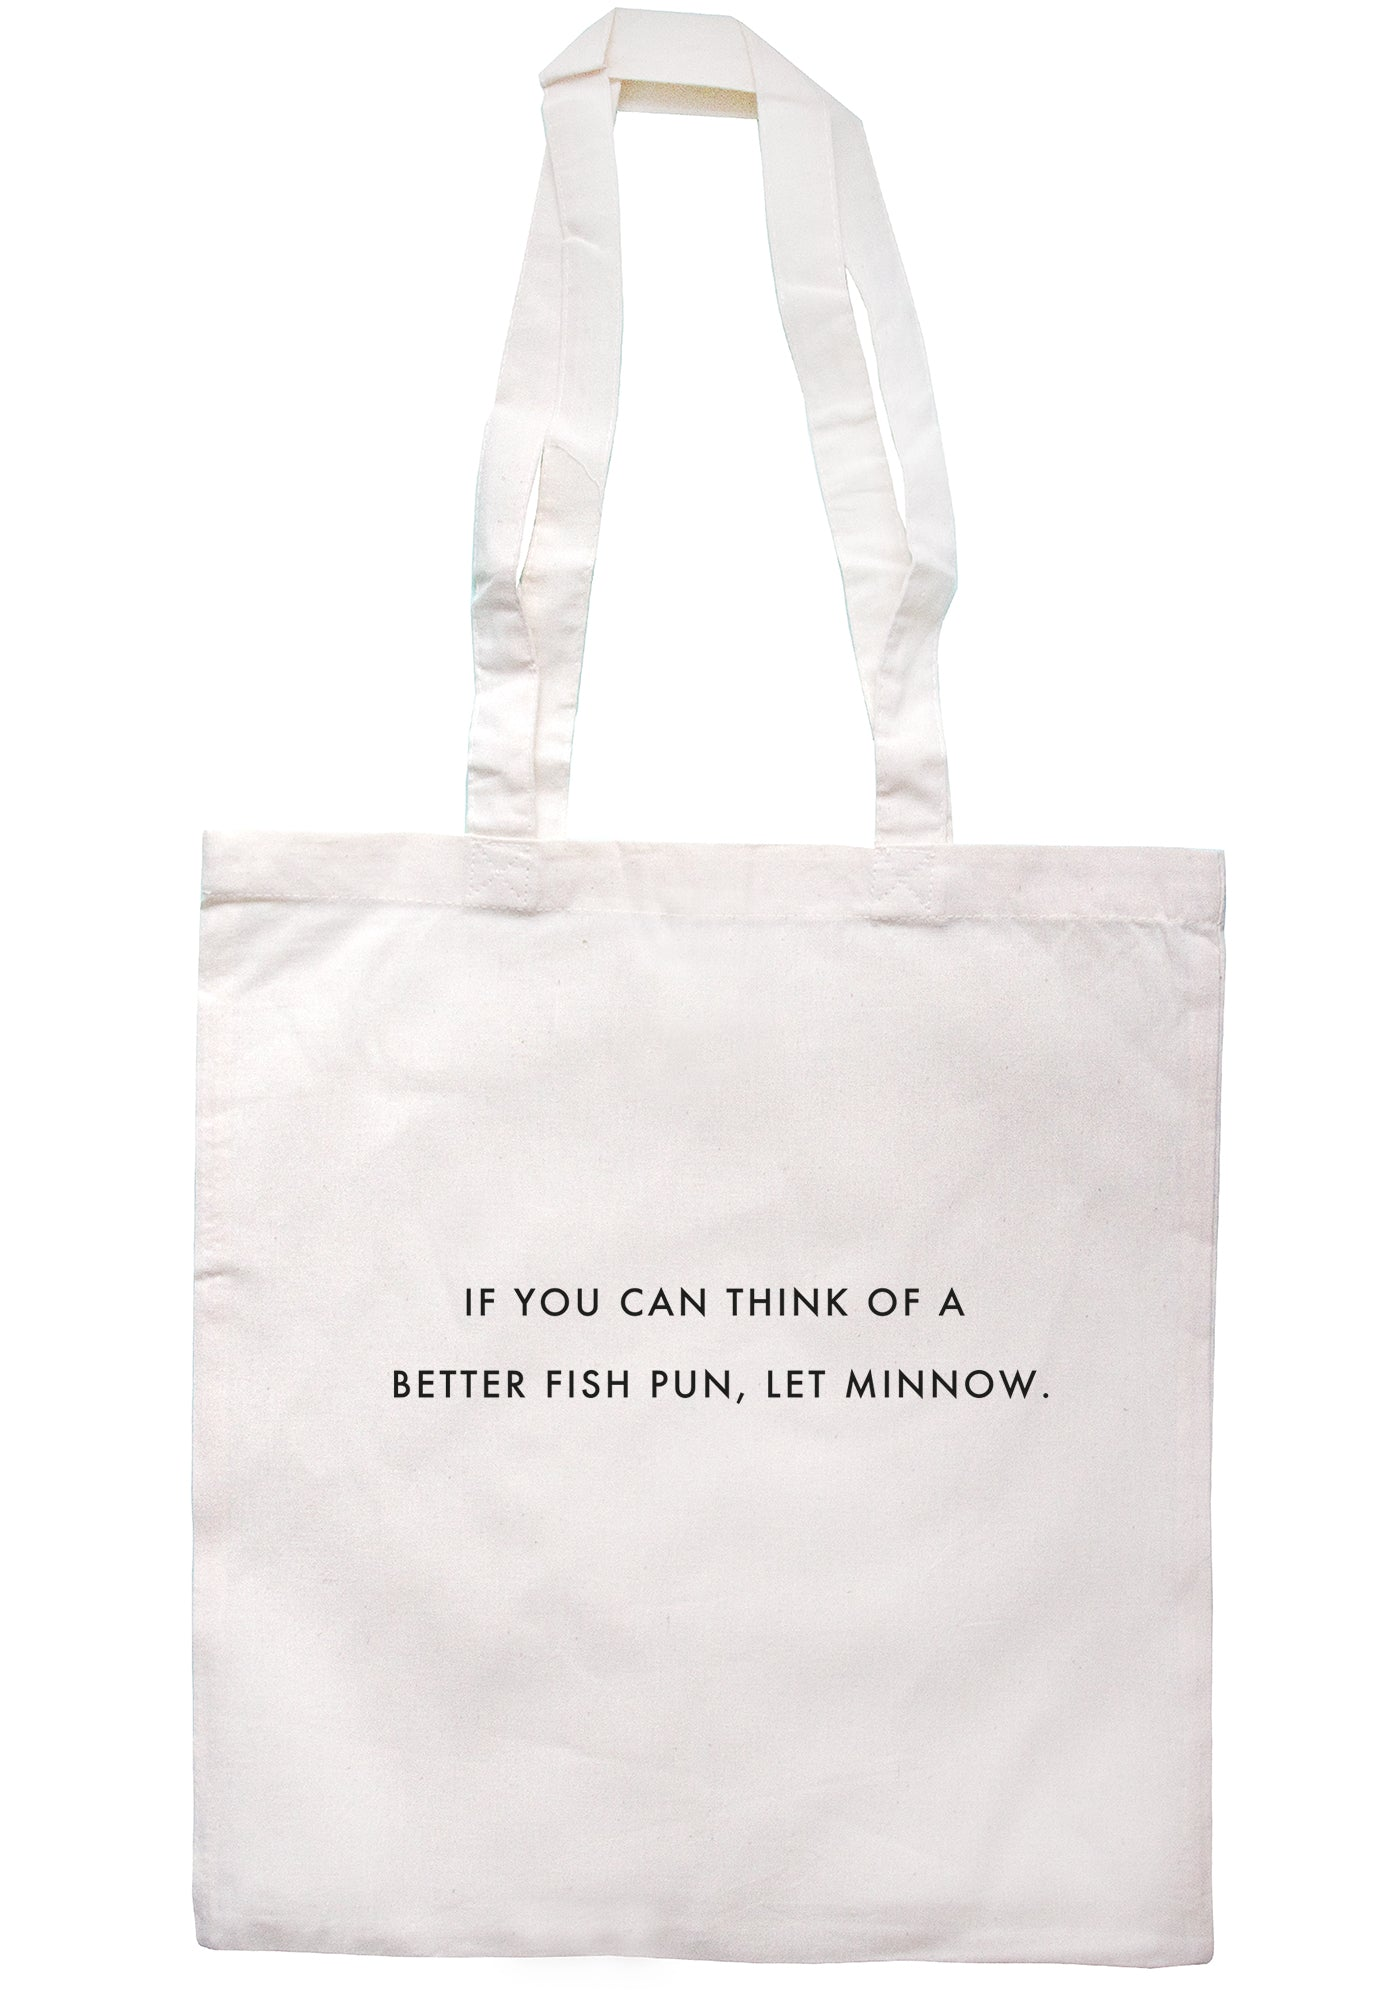 If You Can Think Of A Better Fish Pun, Let Minnow Tote Bag S0991 - Illustrated Identity Ltd.